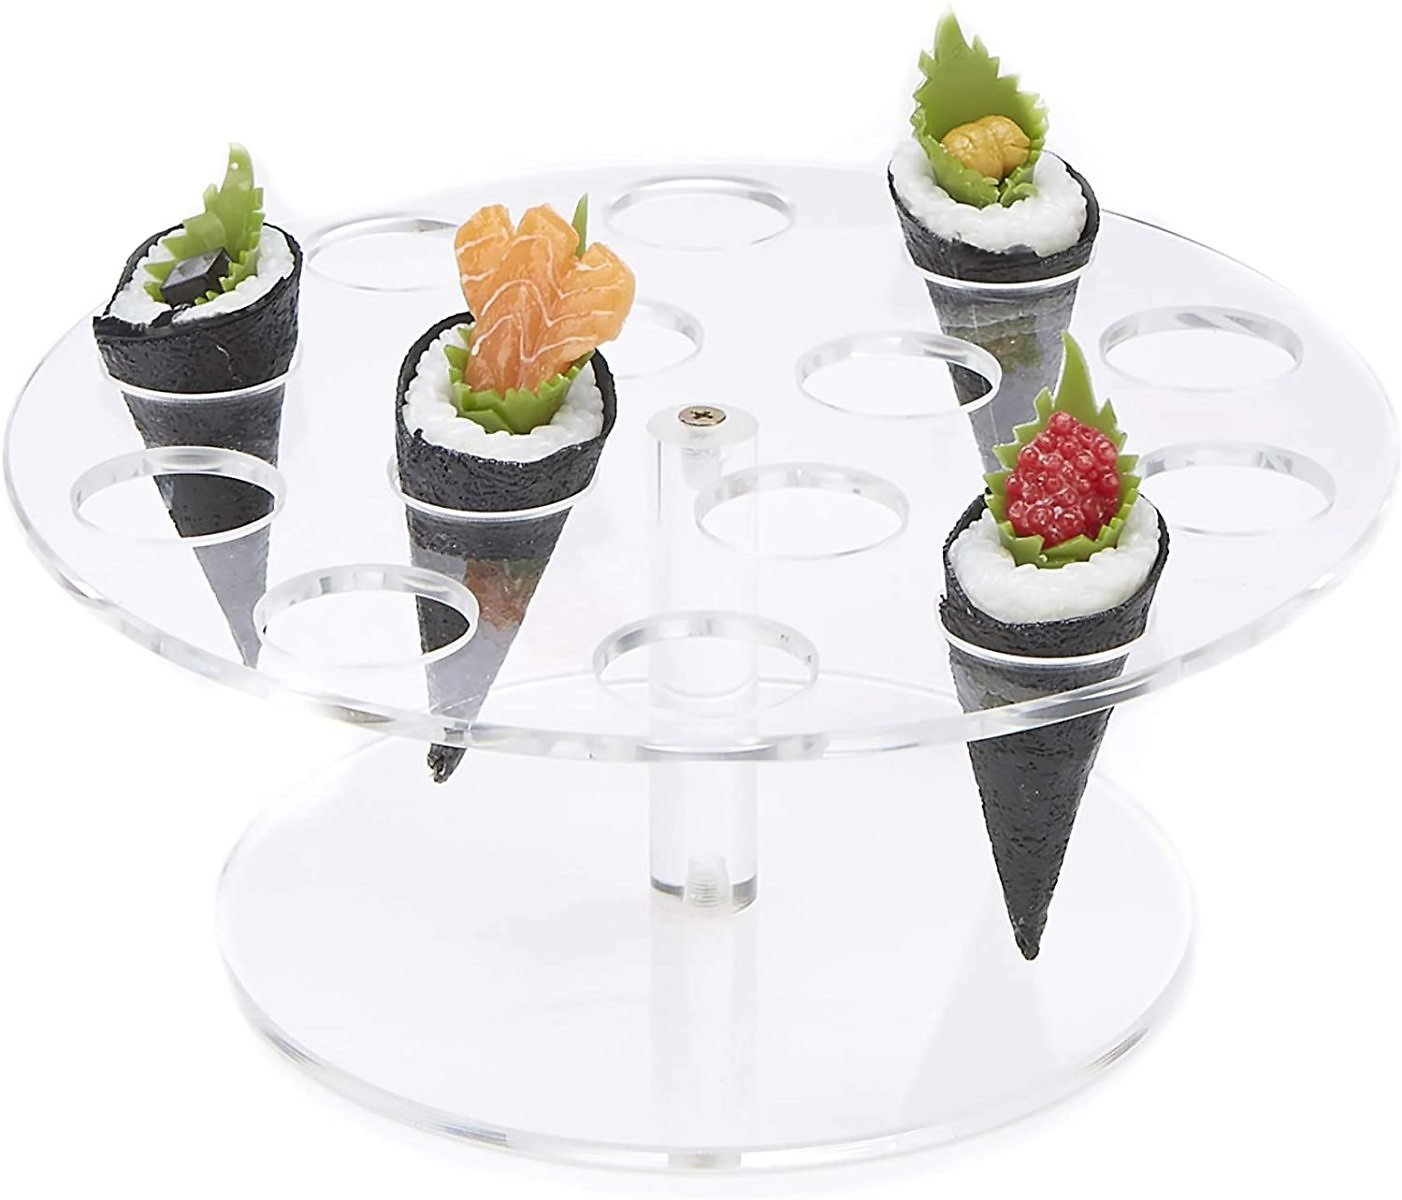 Mind Reader Acrylic Food, Ice Cream Cone Holder, Sushi Hand Roll Display Stand, 14 Slot Circle